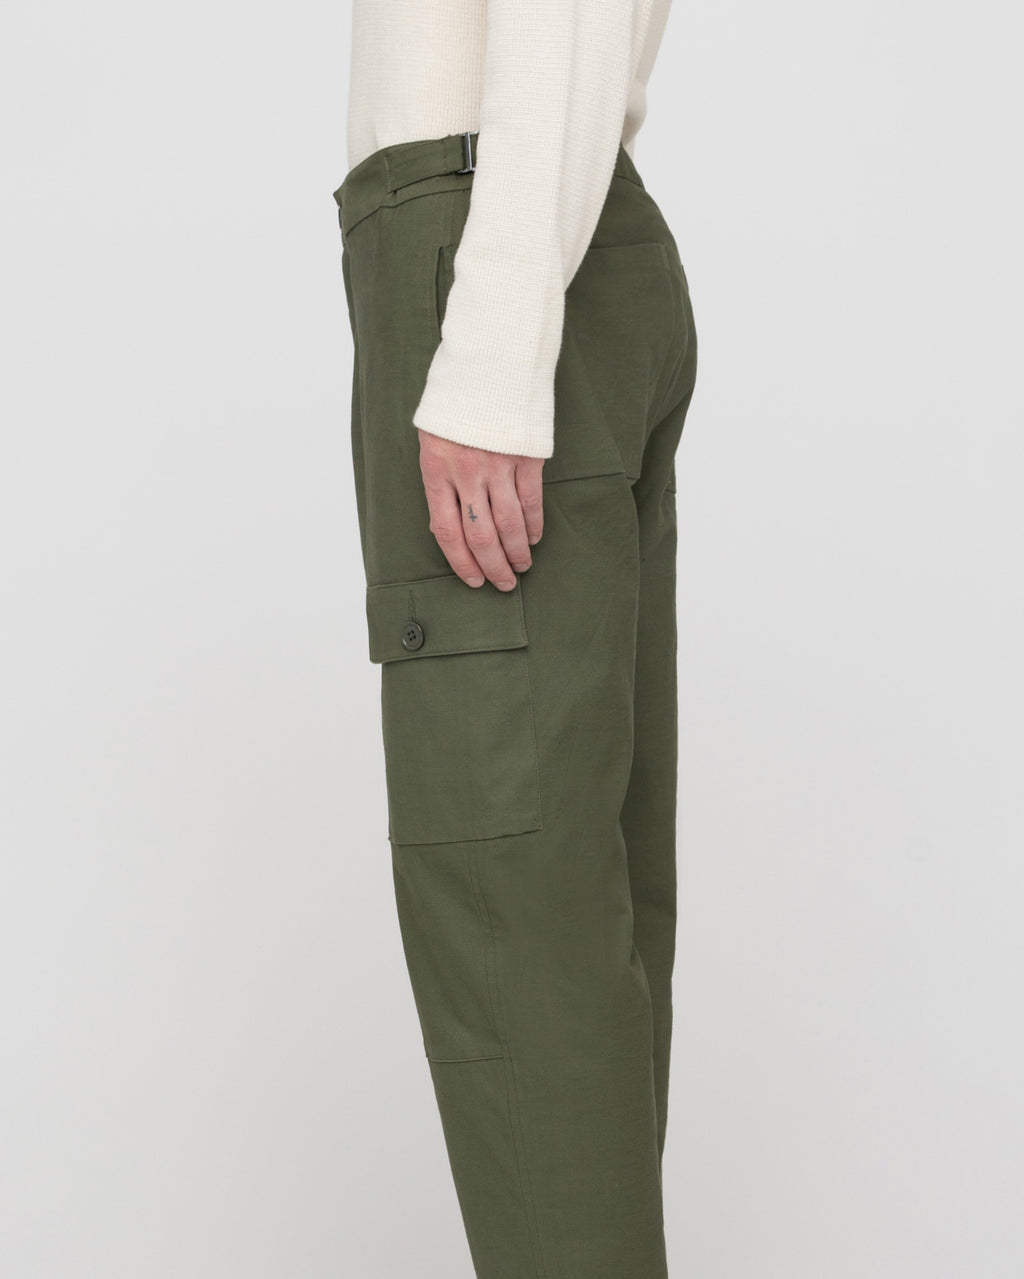 The Arabella Pant in Olive Green